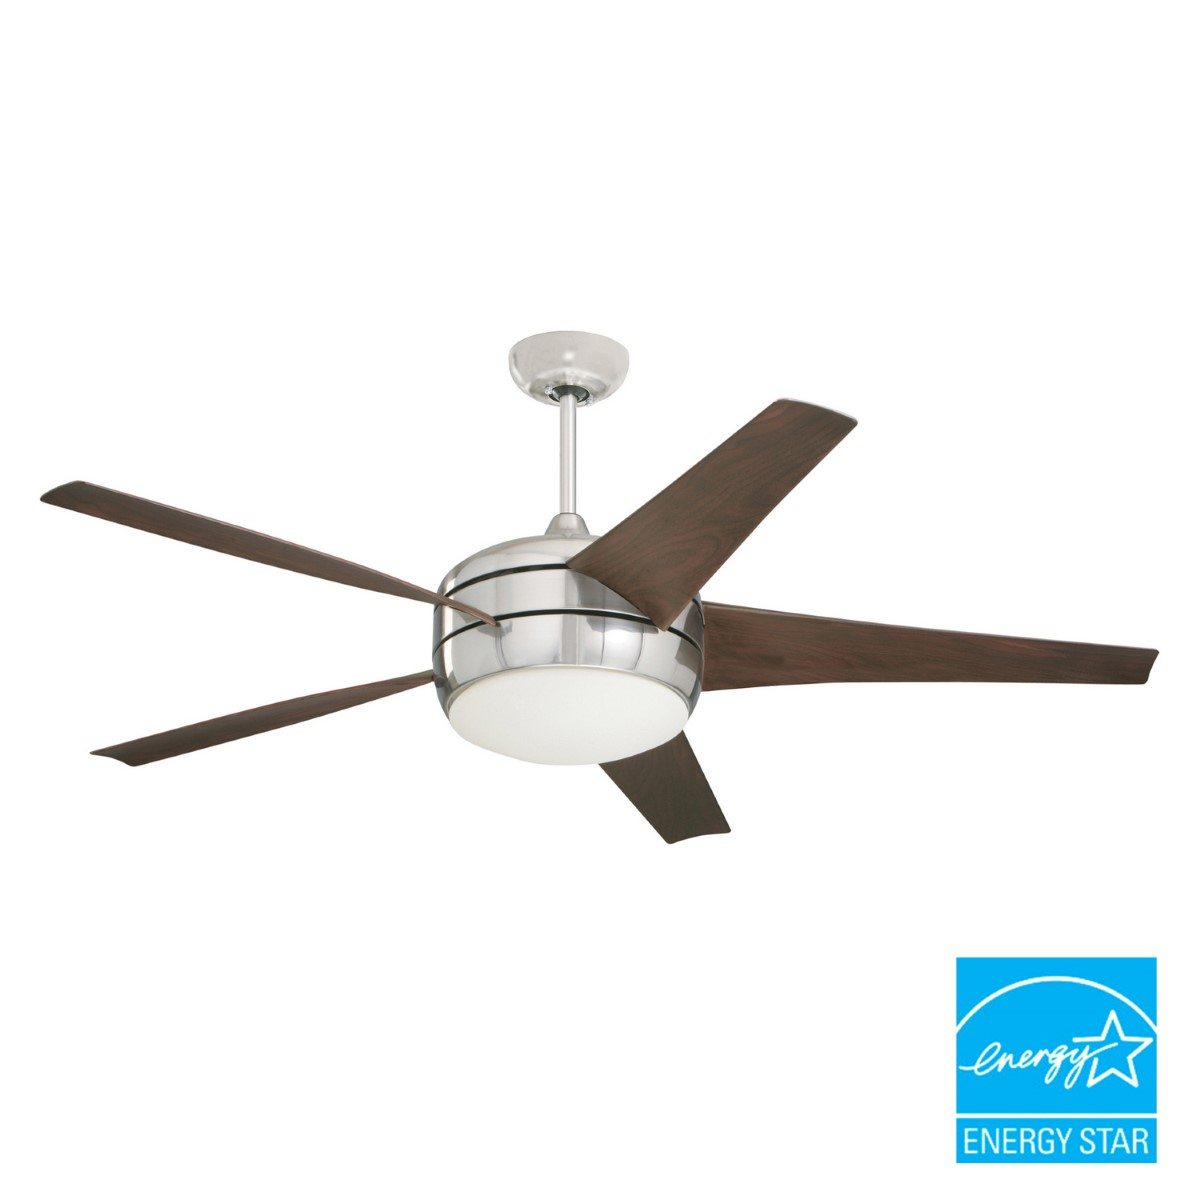 Emerson Midway Eco Brushed Steel Ceiling Fan